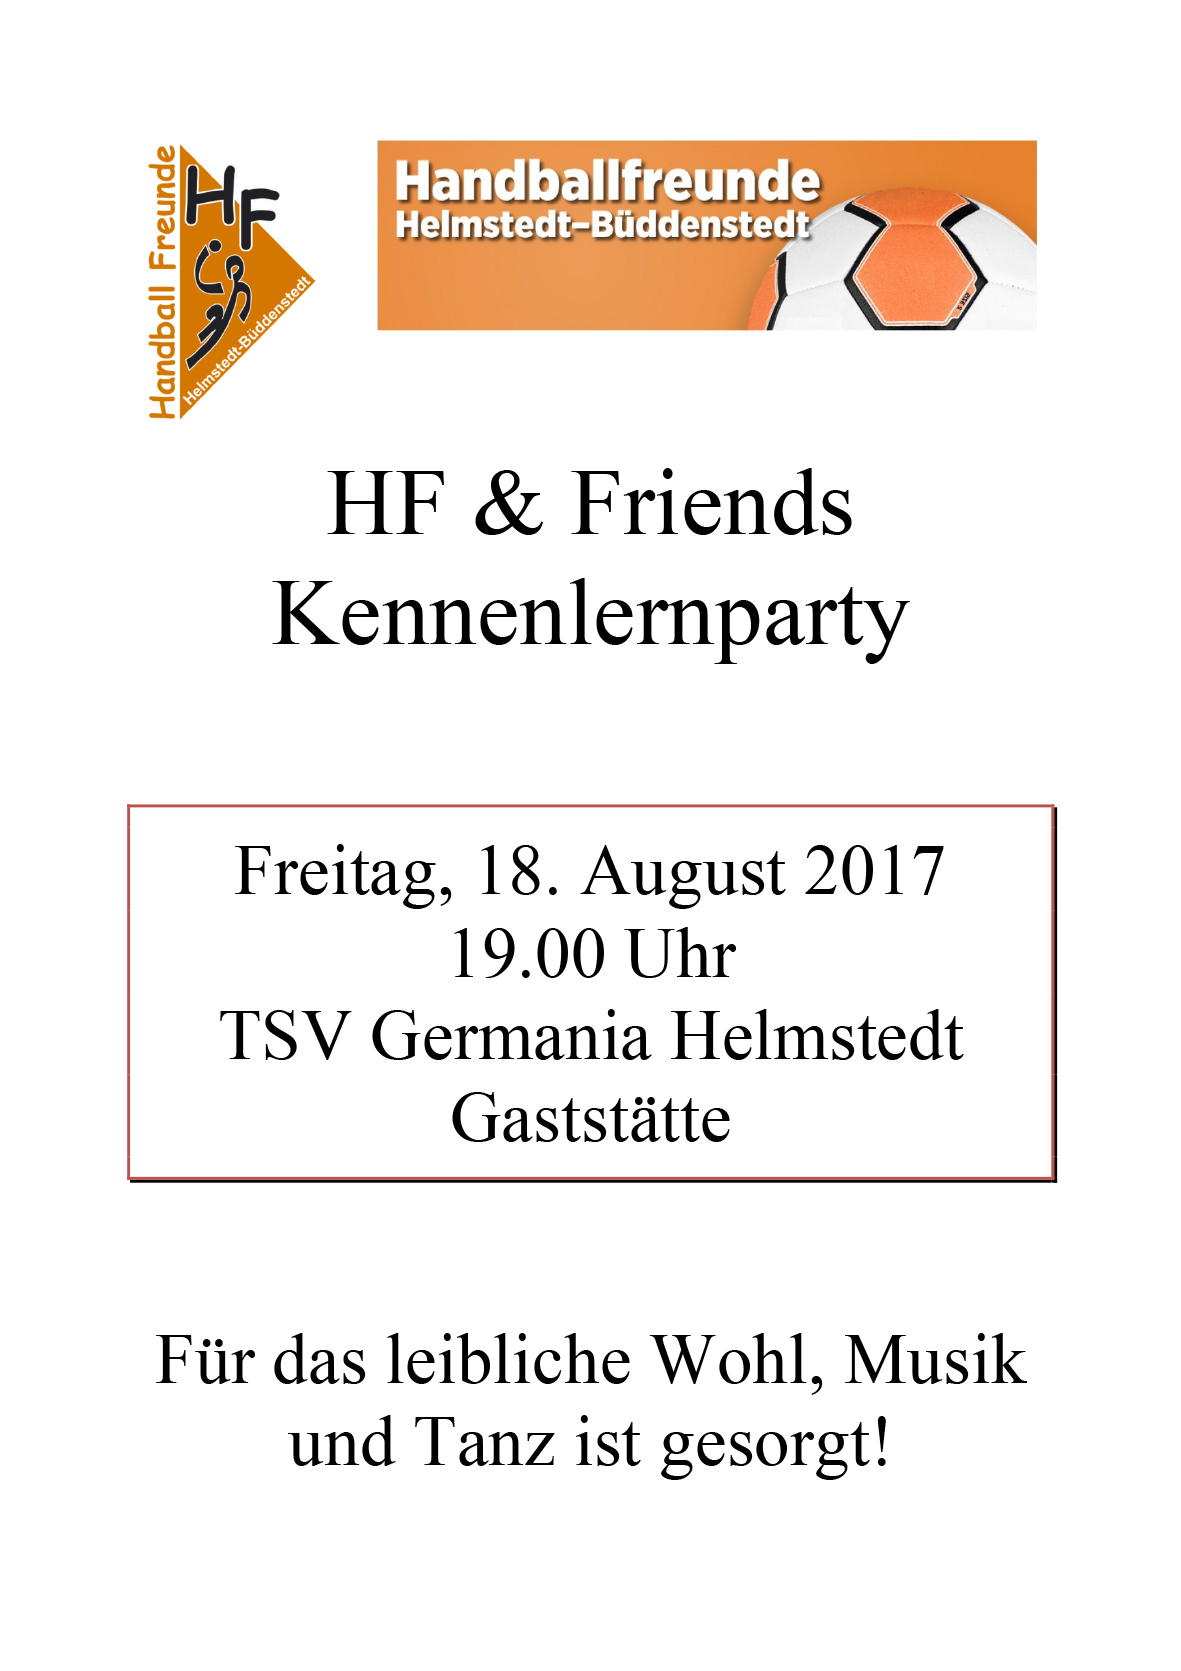 HF-Kennenlernparty-2017